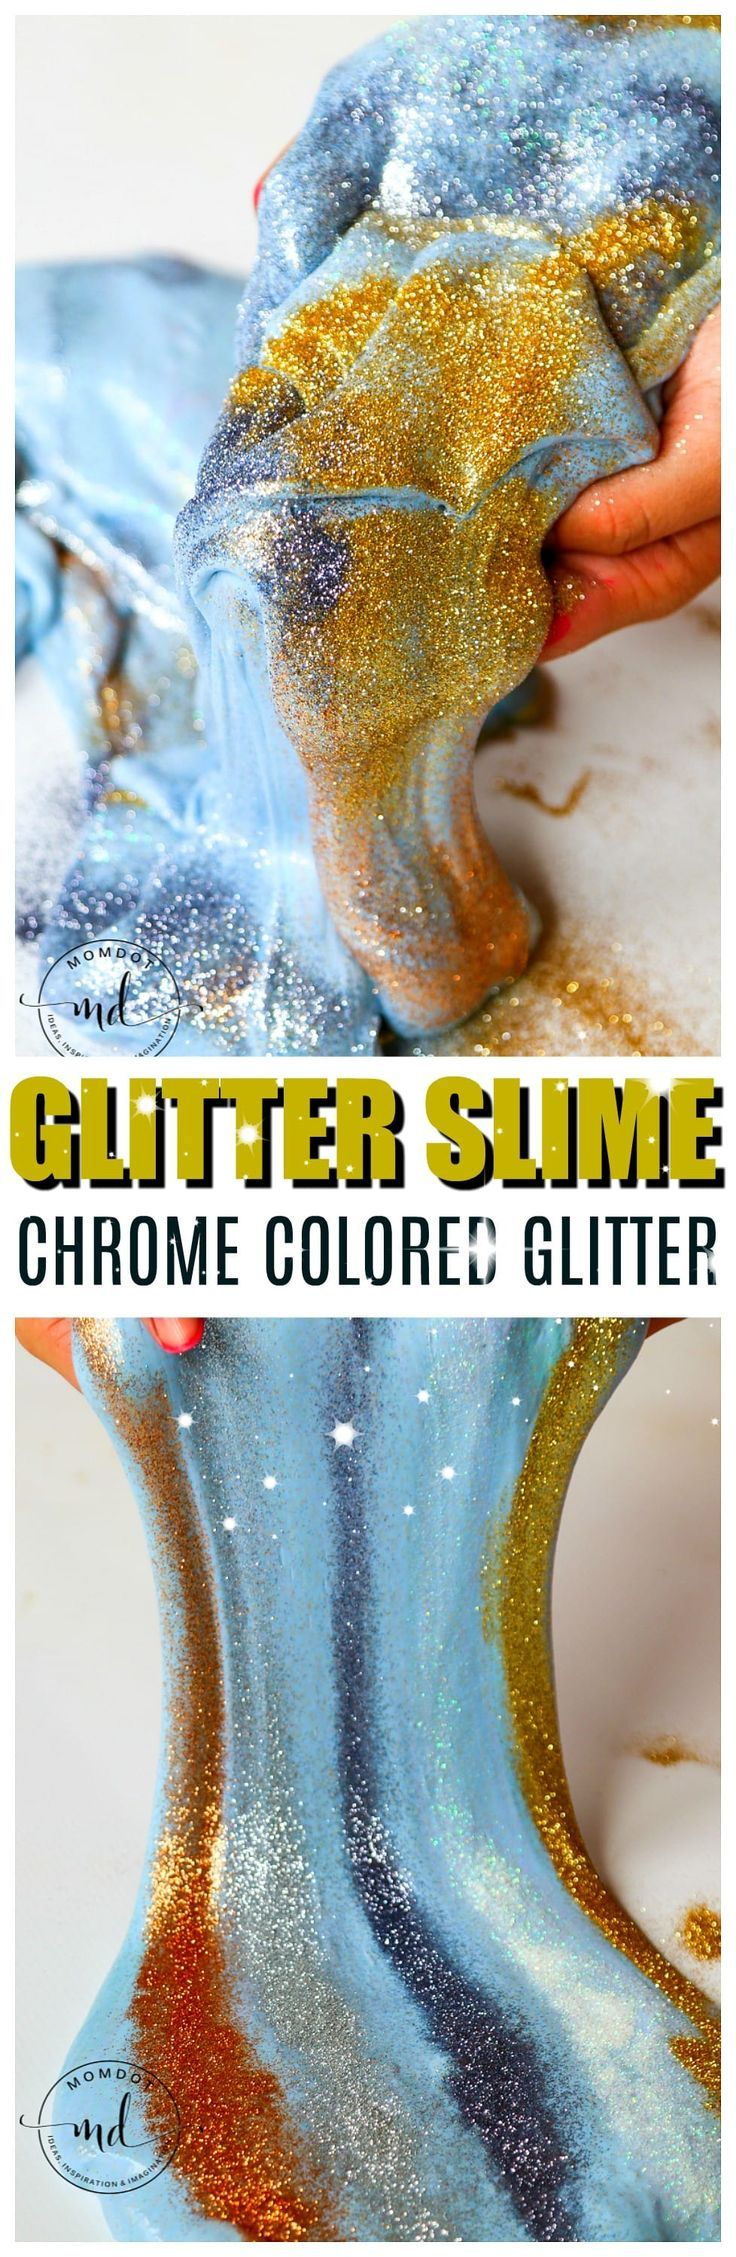 how to make slime with glitter glue without borax